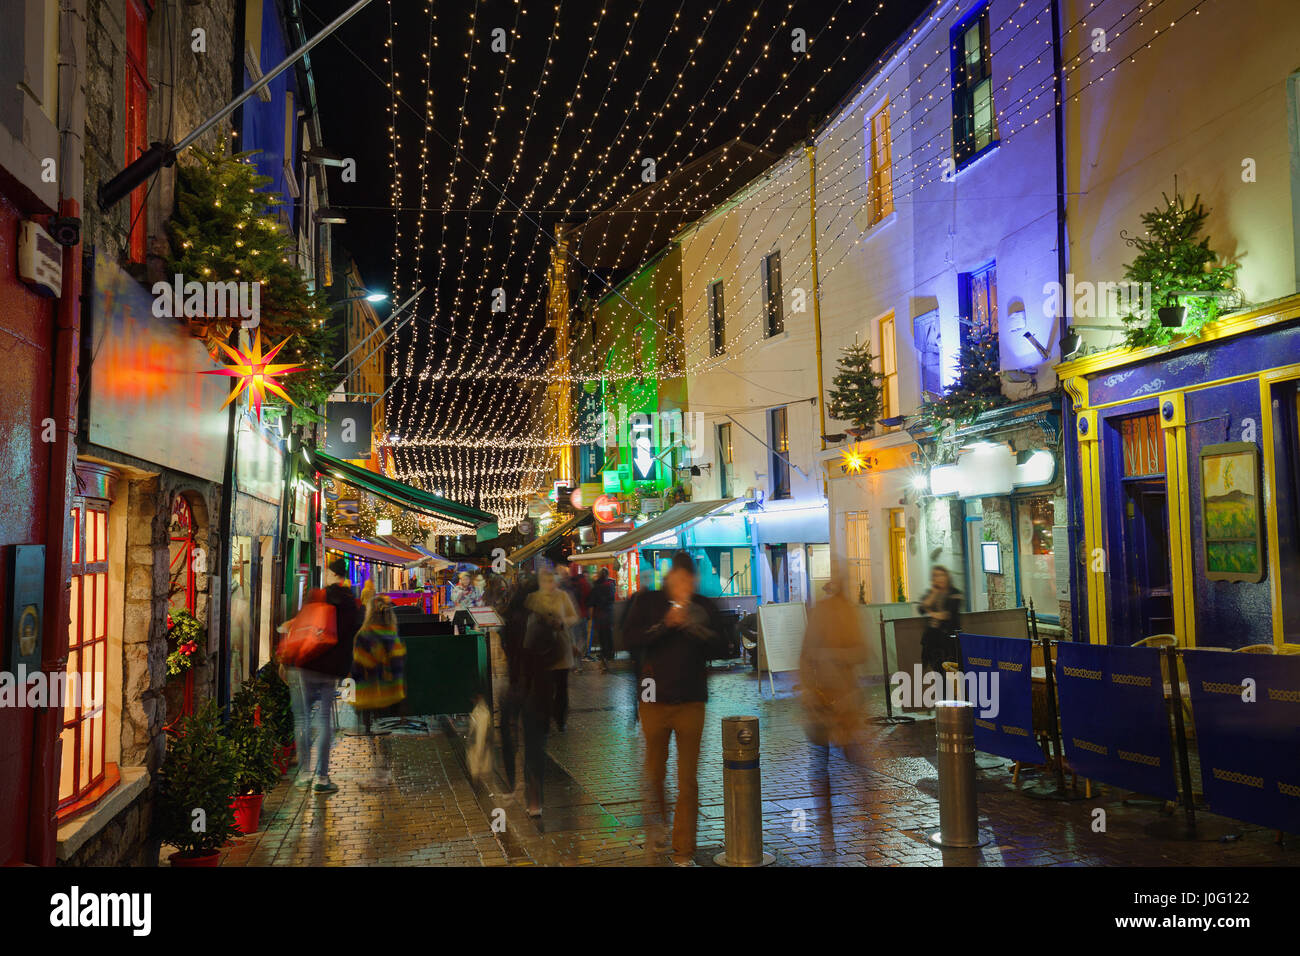 Shop street decorated with Christmas lights. Galway, Ireland - Stock Image